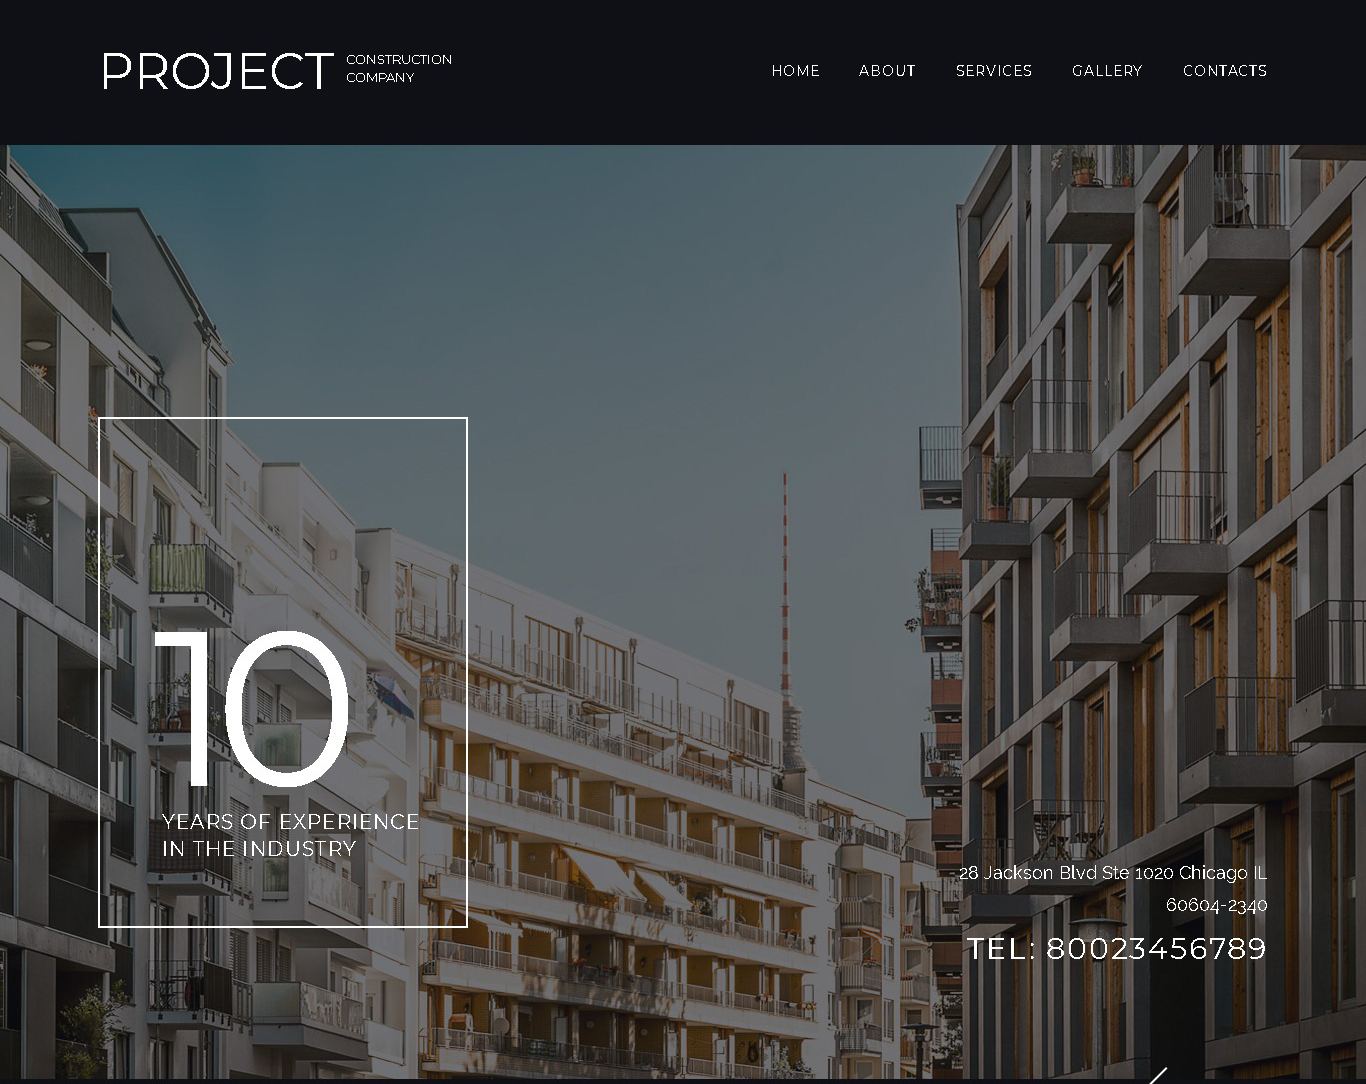 architecture project construction company website template